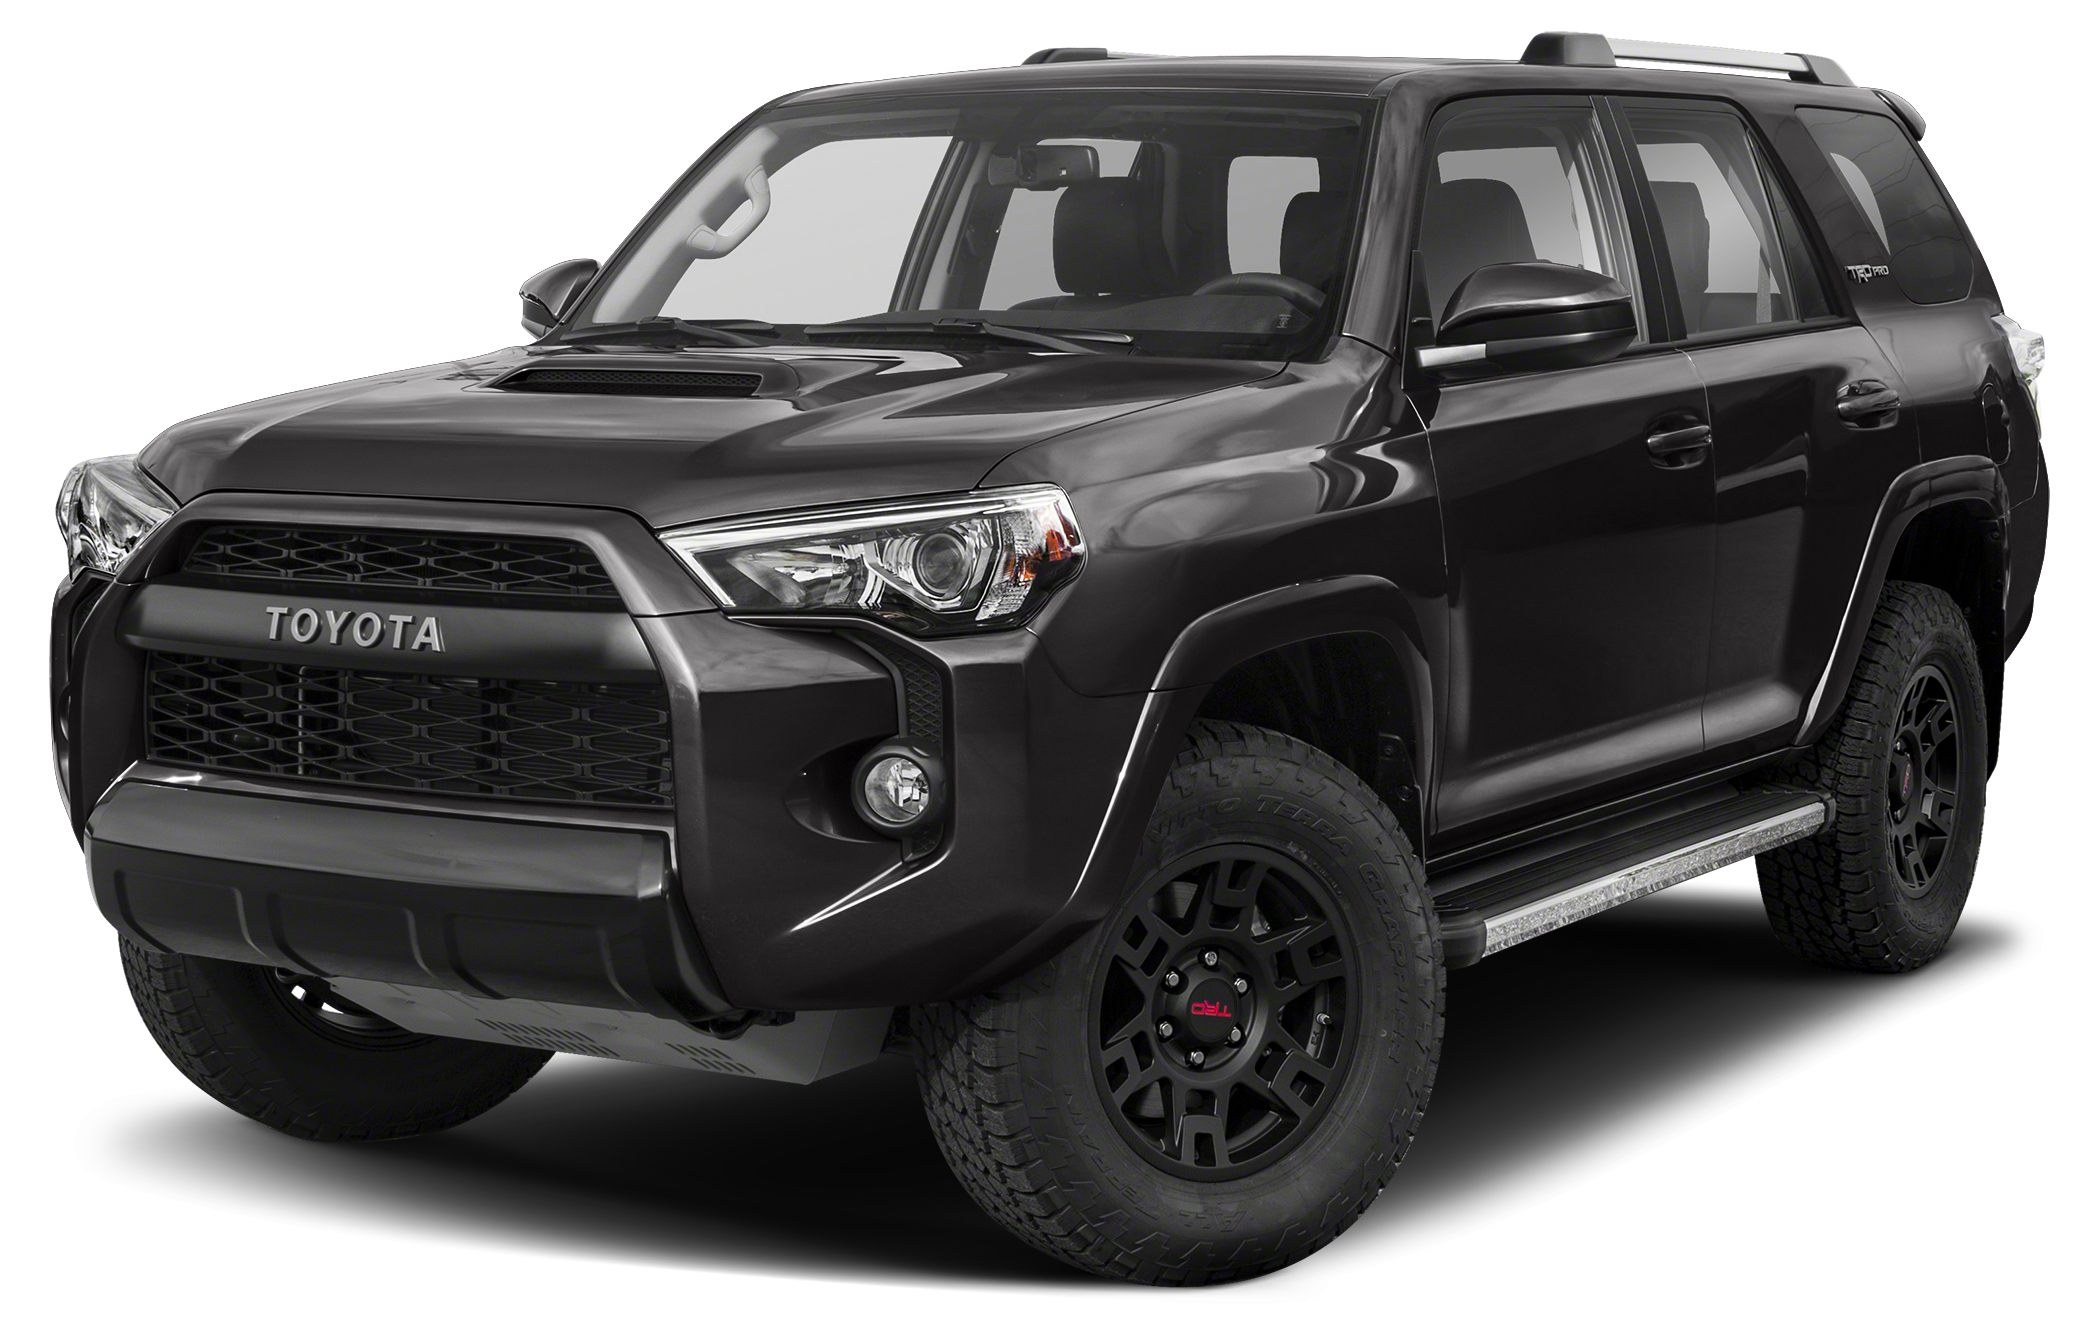 2016 Toyota 4Runner TRD Pro Westboro Toyota is proud to present HASSLE FREE BUYING EXPERIENCE with